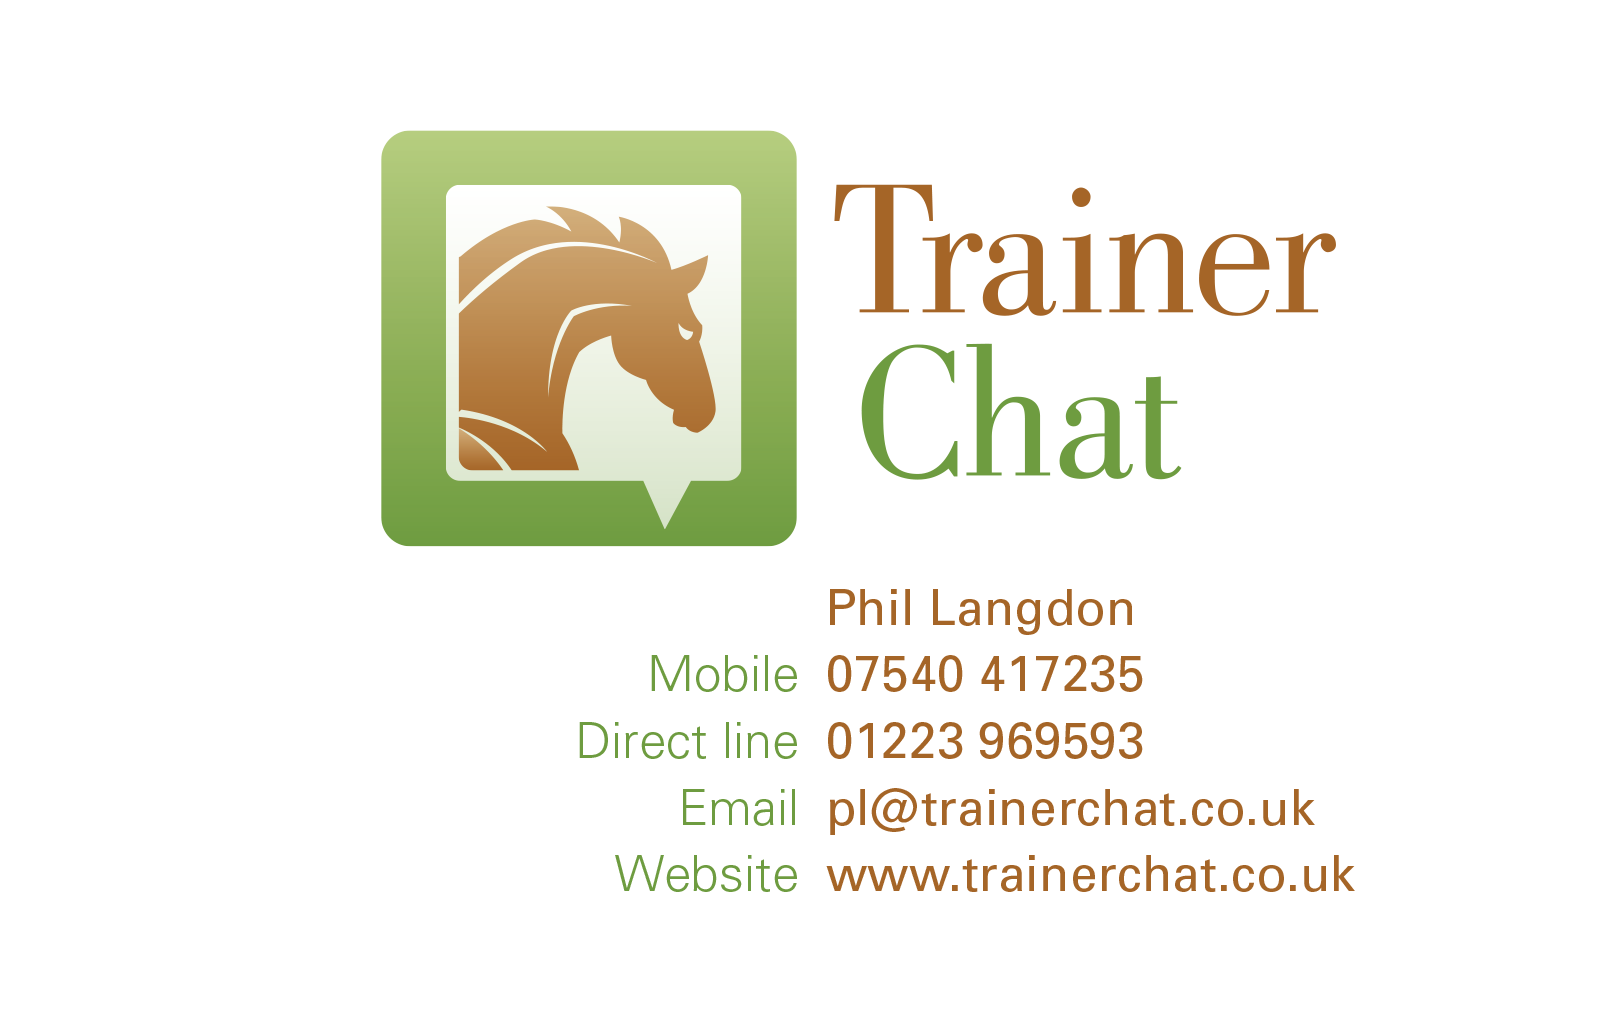 trainer chat card front